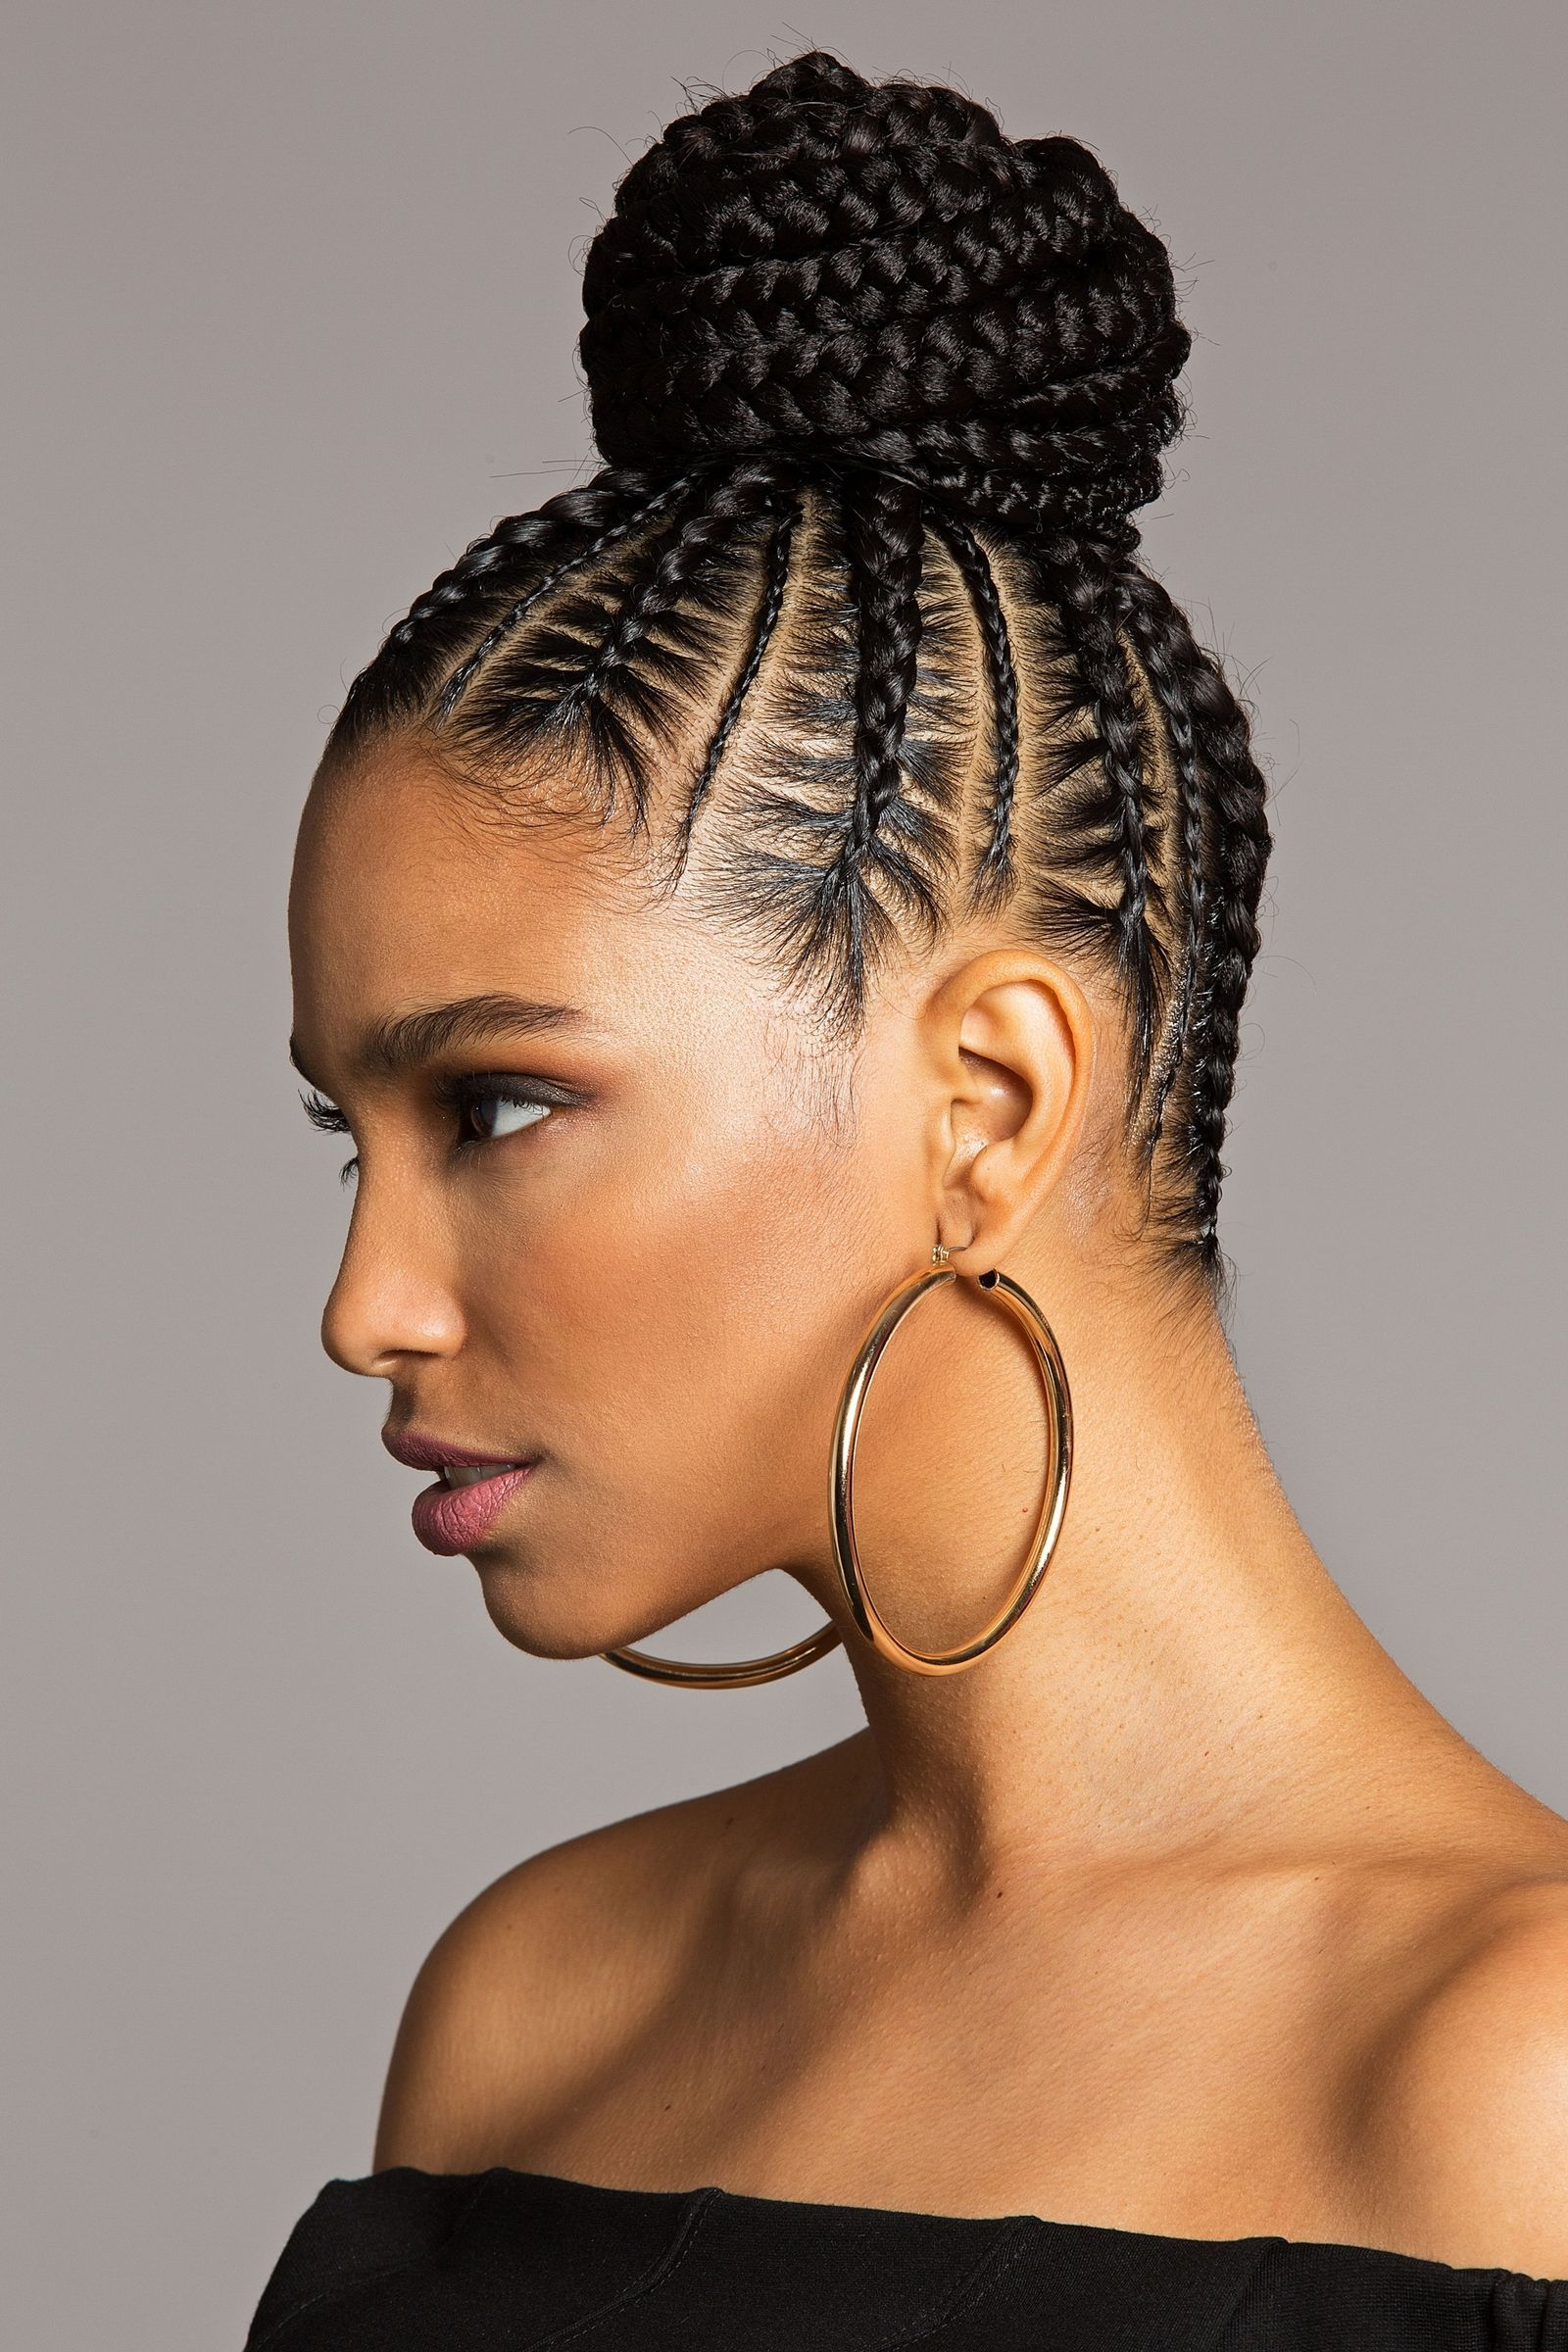 3 Unique Ways to Style Your Hair in a Braided Bun | NaturalhairRocks ...